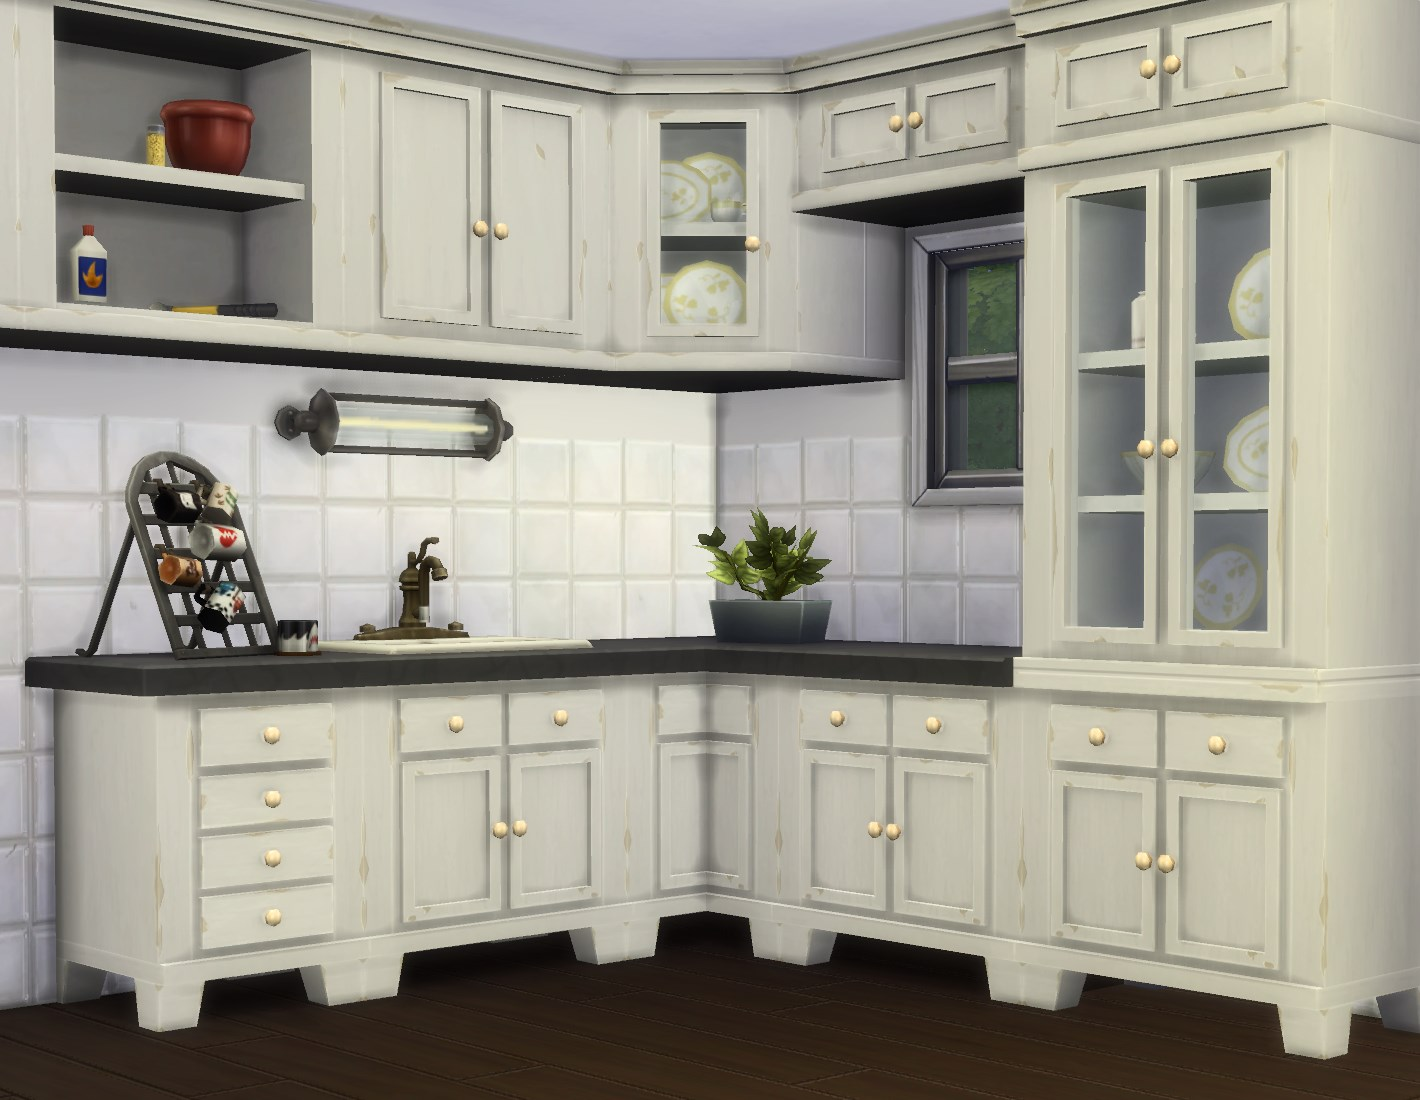 Sims 4 Küchenzeile My Sims 4 Blog Country Kitchen And Cupboard By Plasticbox